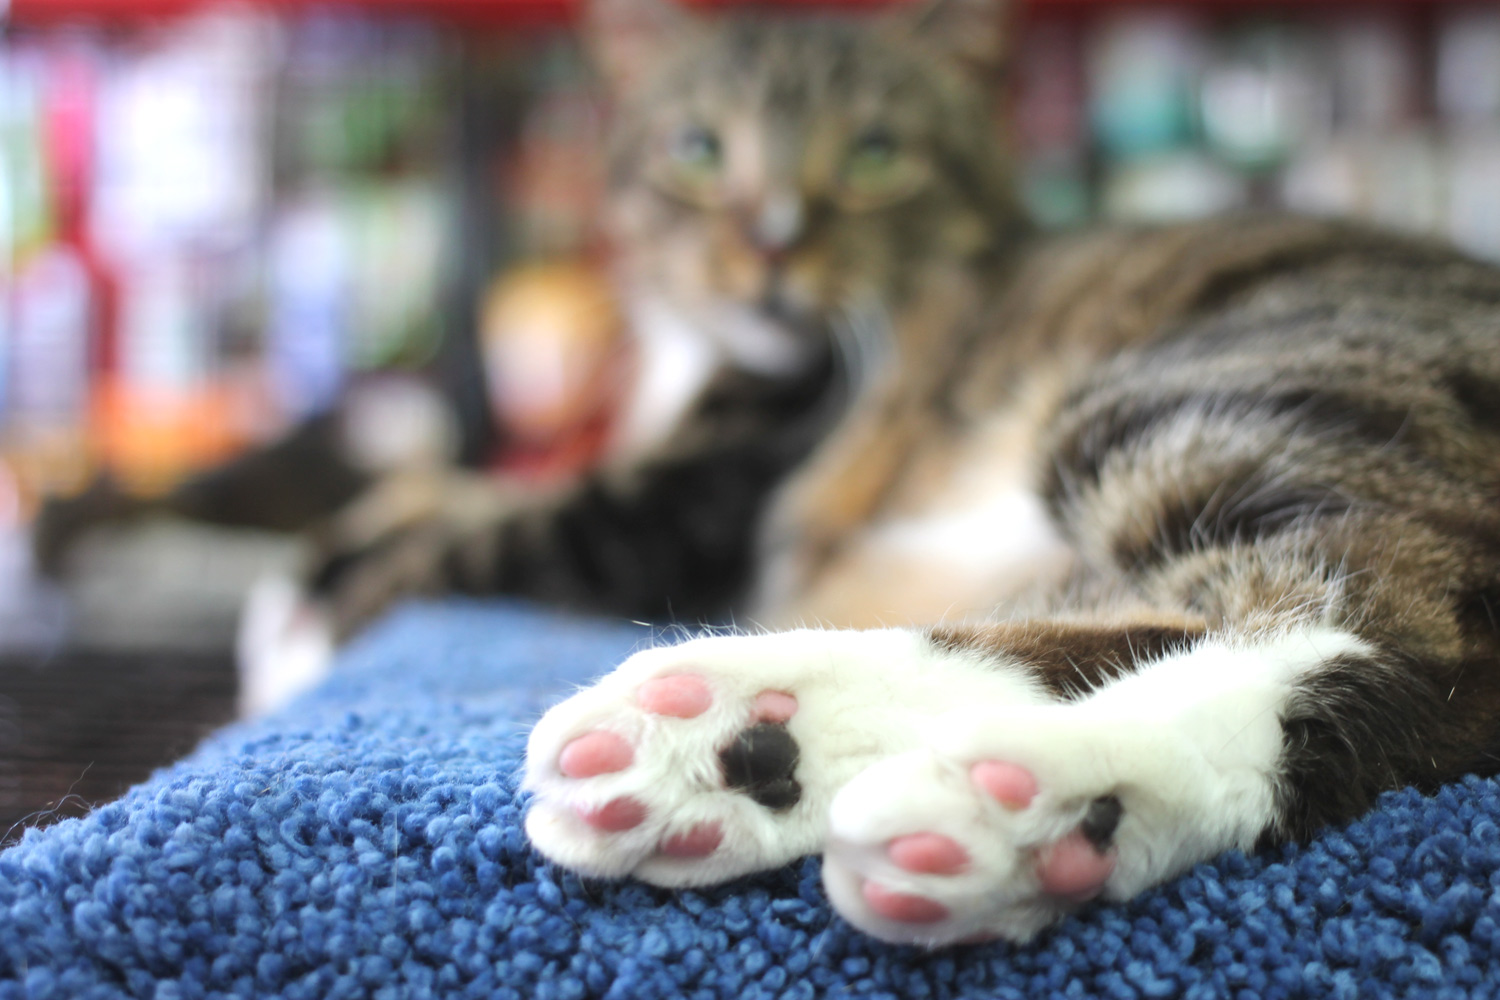 And of course we finish with the obligatory kitten toes pic!